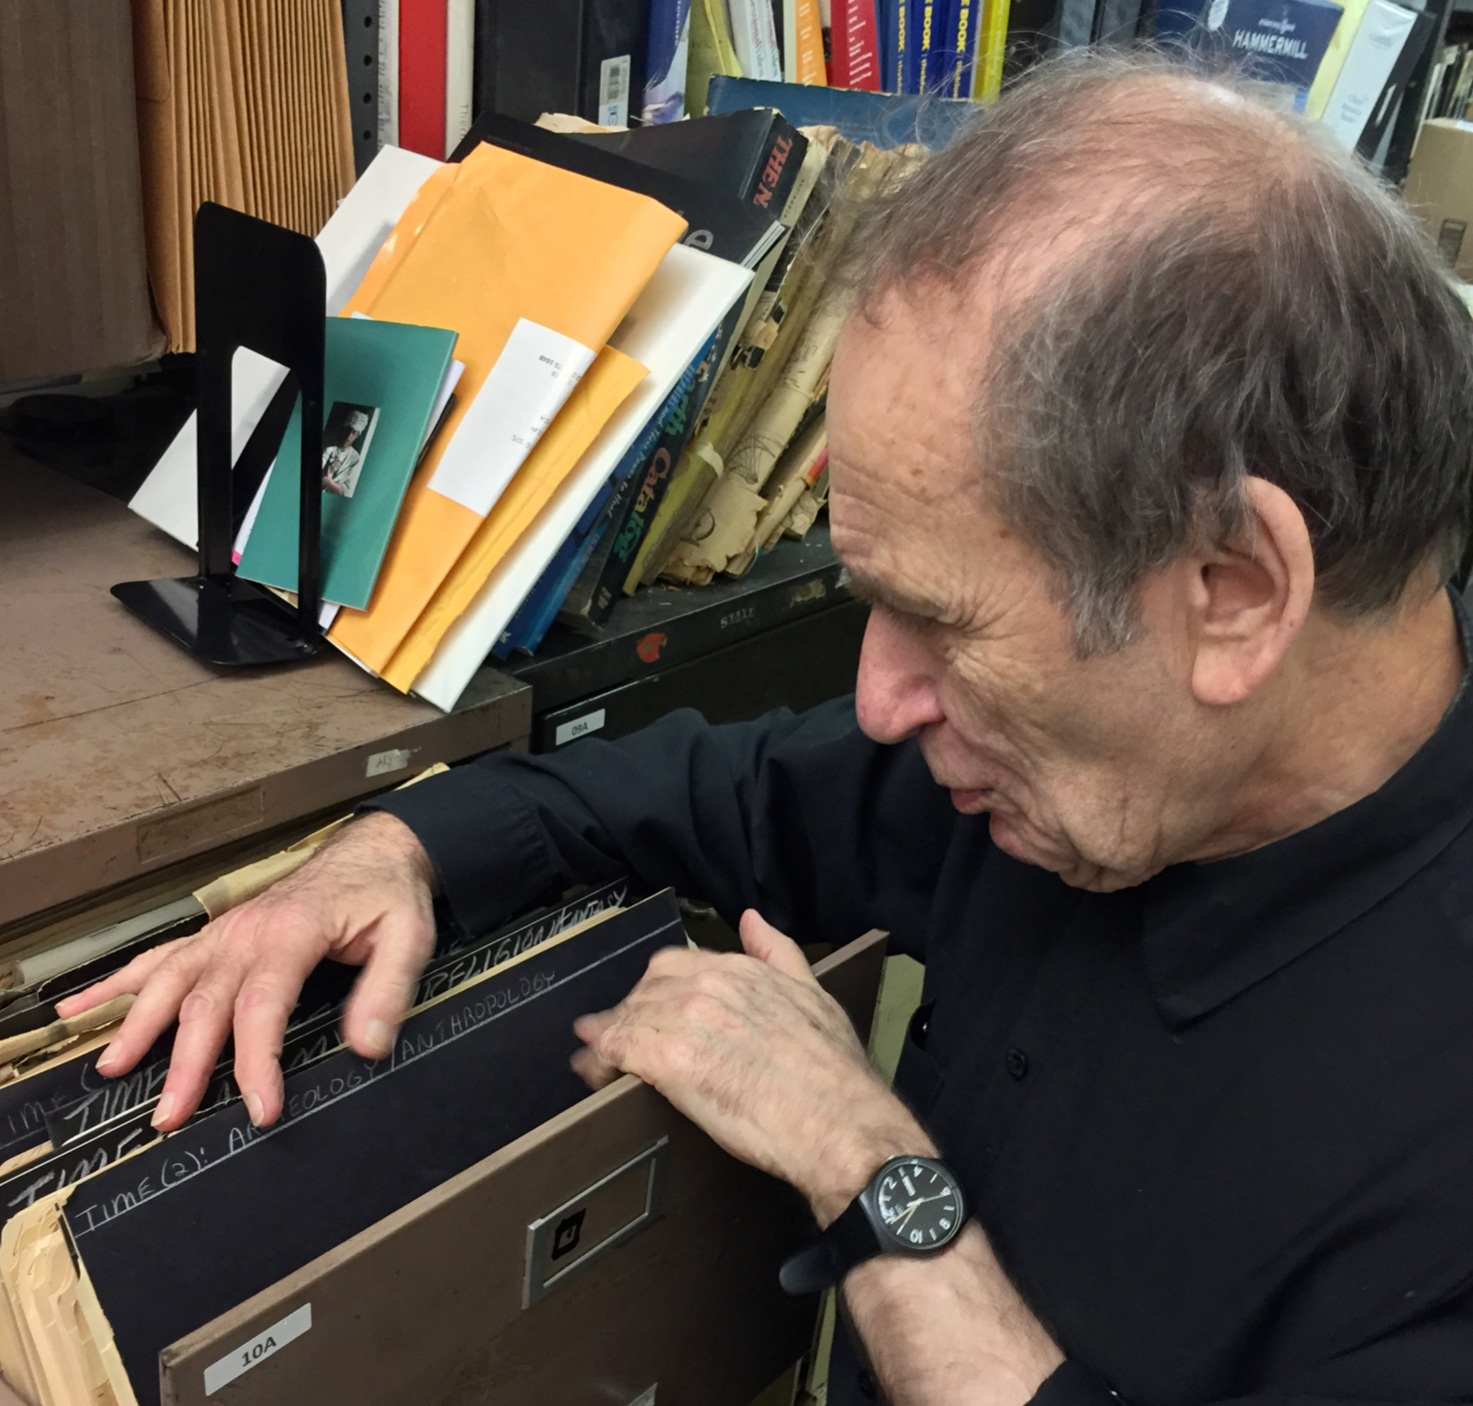 The late Vito Acconci in his archives.